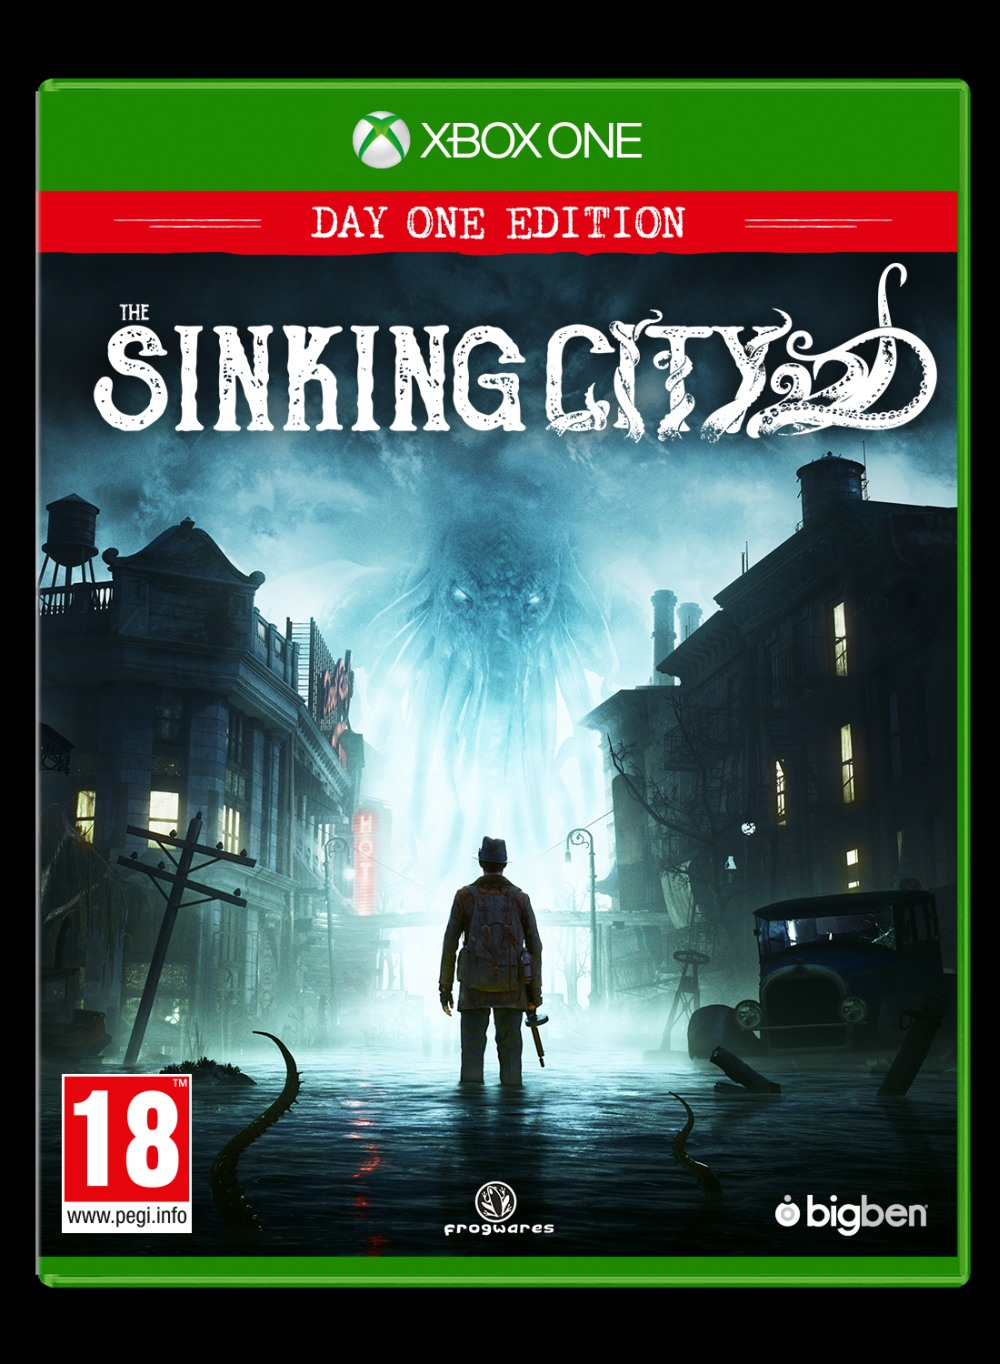 The Sinking City - Day 1 Edition (XONE)